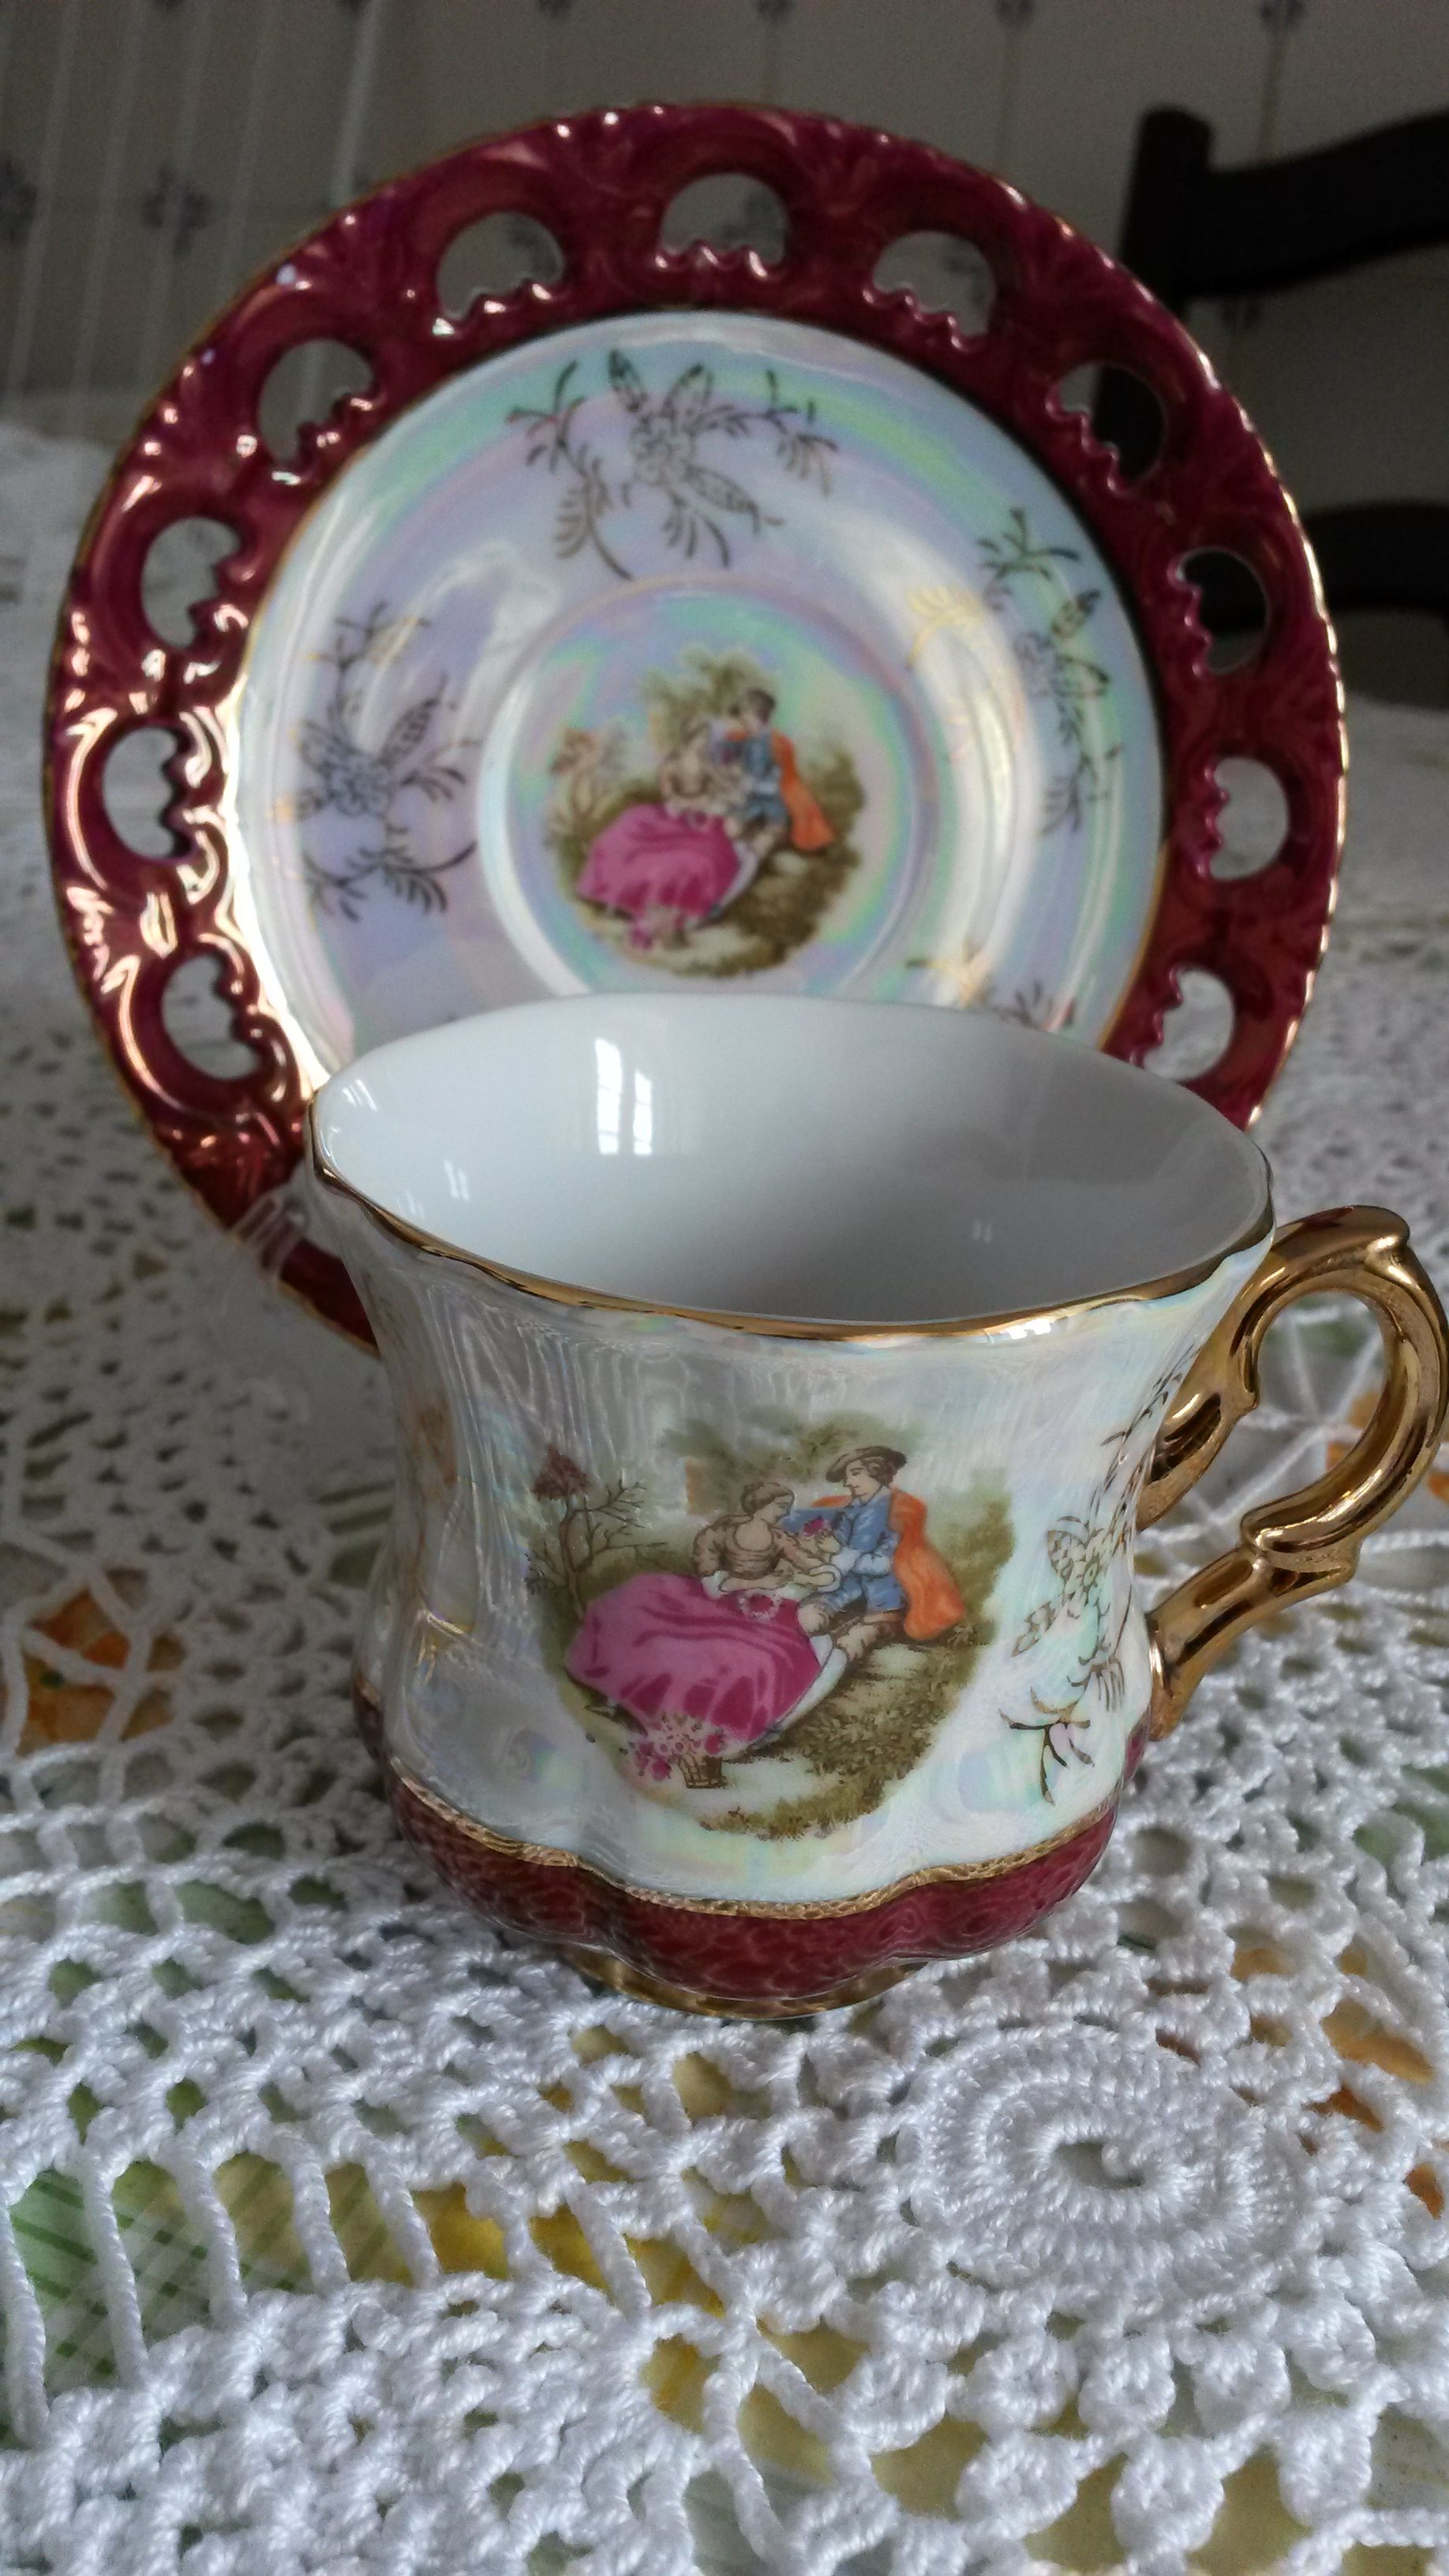 From my colection of Tea Cups